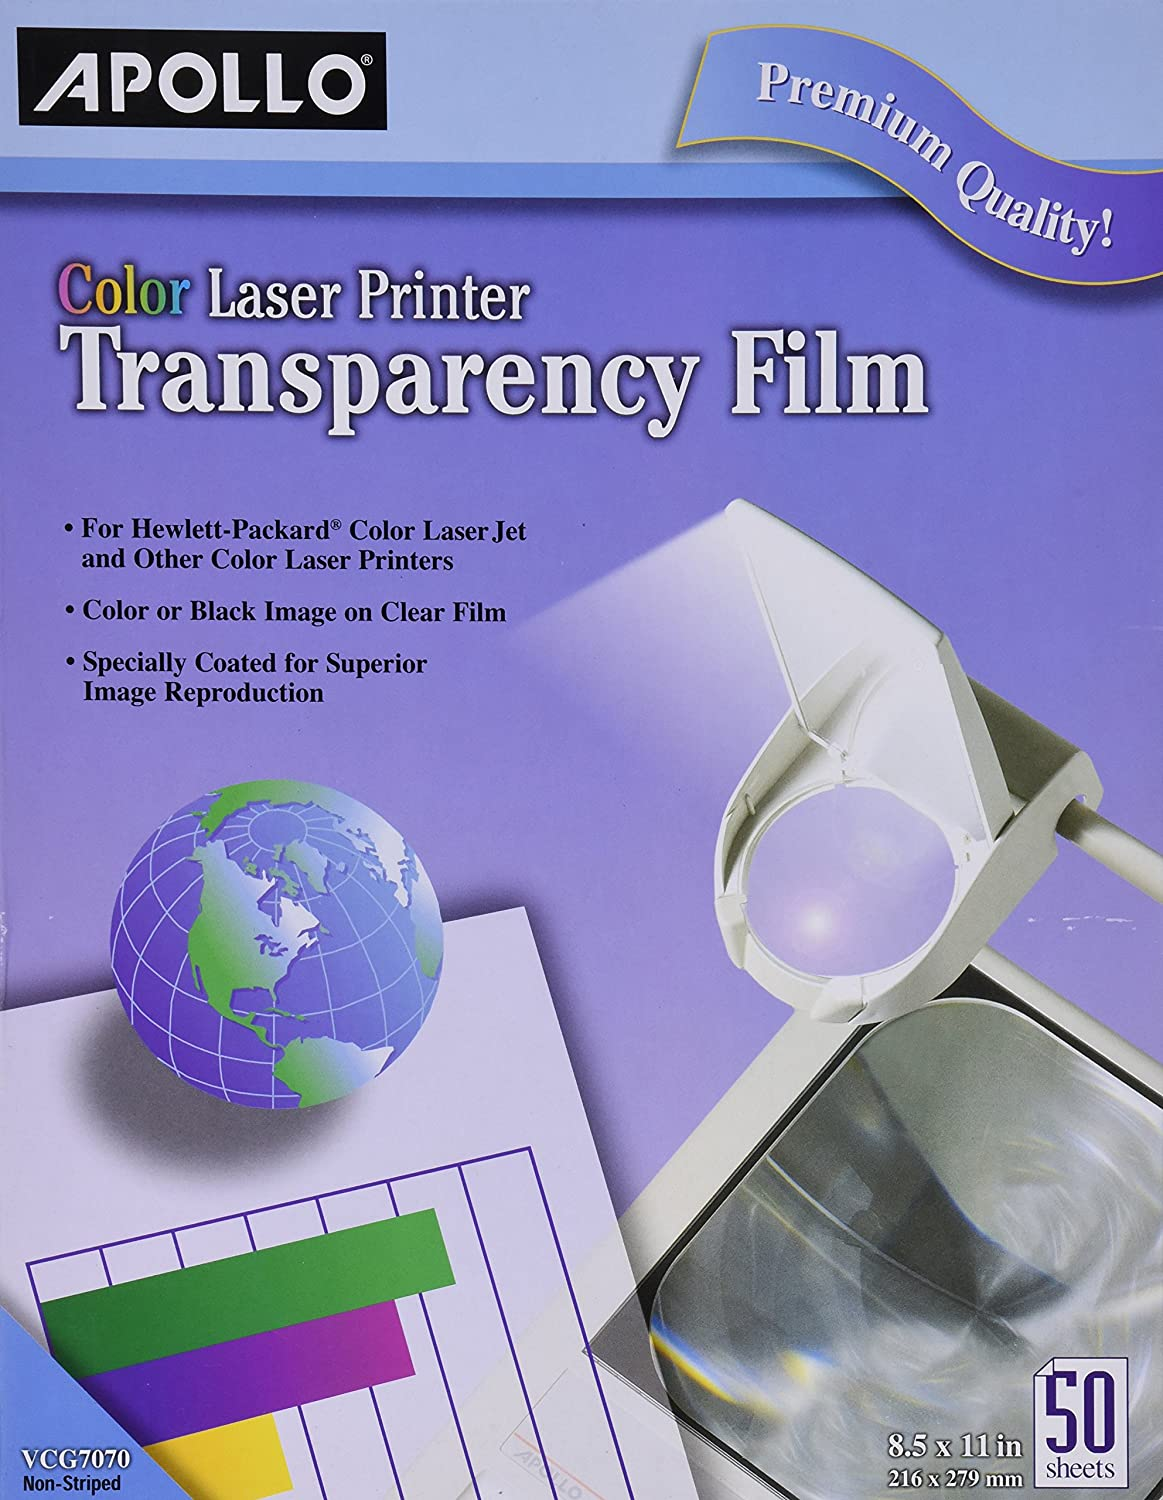 Amazon Apollo Laser Jet Printer And Copier Transparency Film 50 Sheets CG7060 Labels Office Products